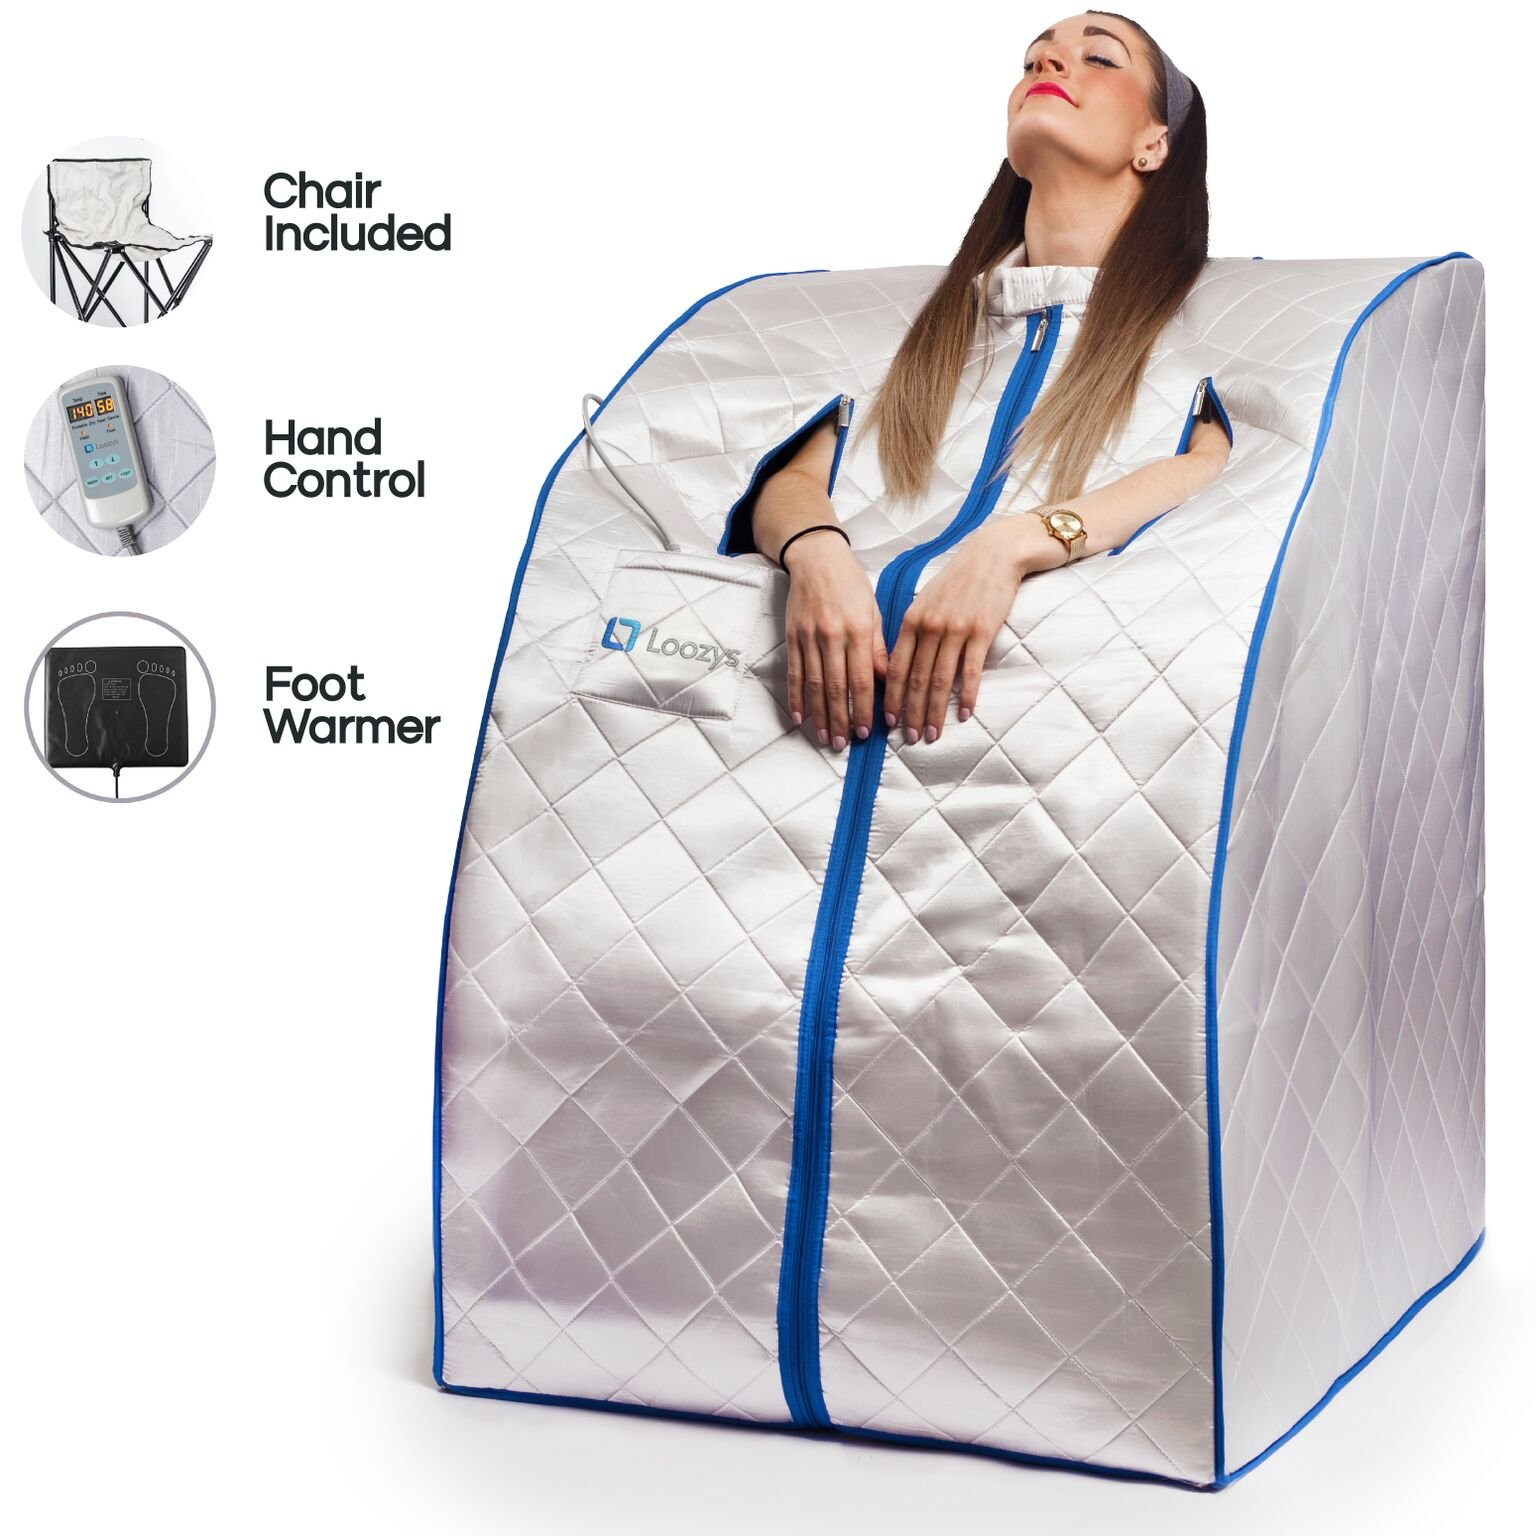 Loozys Rejuvenator Portable Infrared Home Sauna Spa   One Person Sauna for Detox & Weight Loss